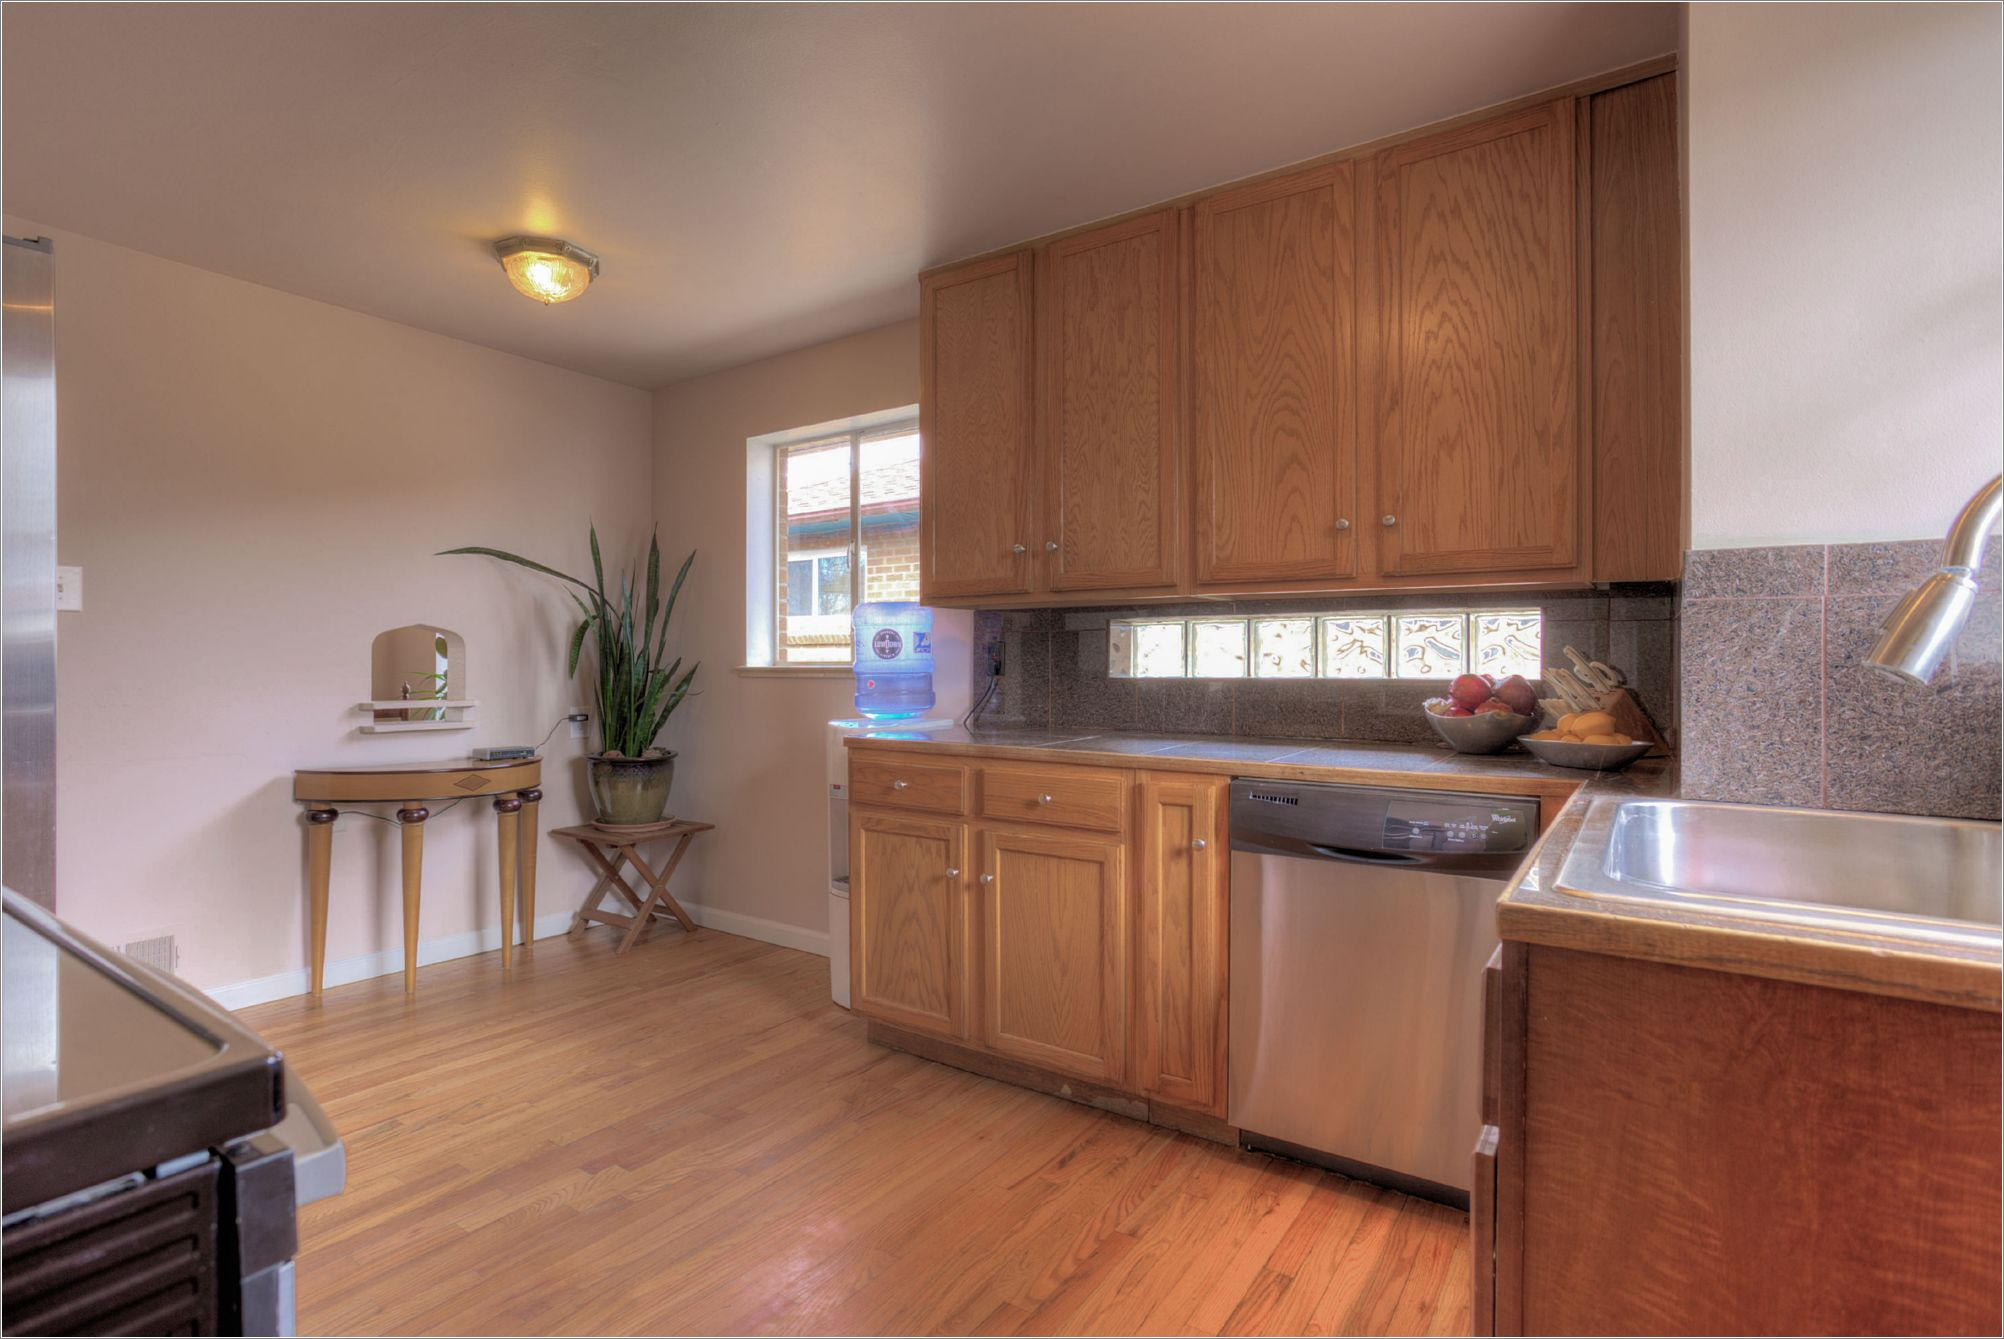 Property Sold - 3562 Ivy Street, Denver